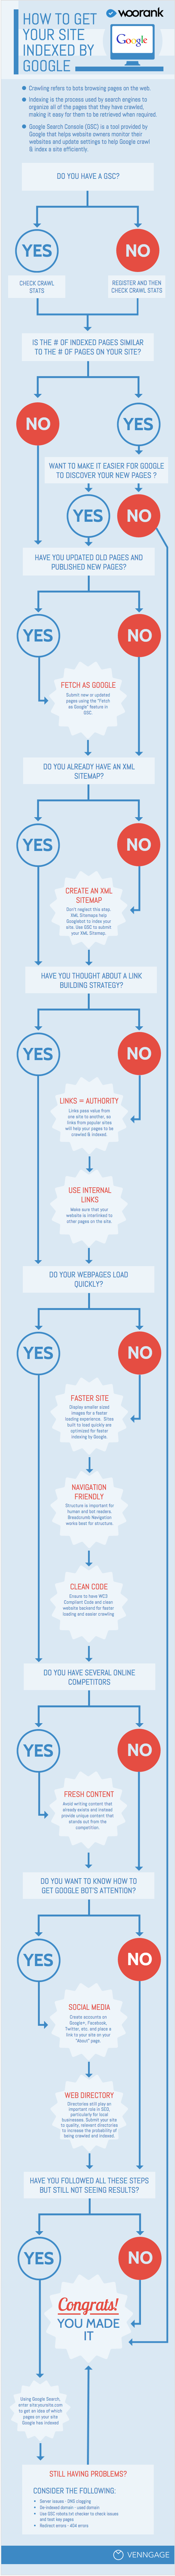 How to get your website indexed by Google - Infographic